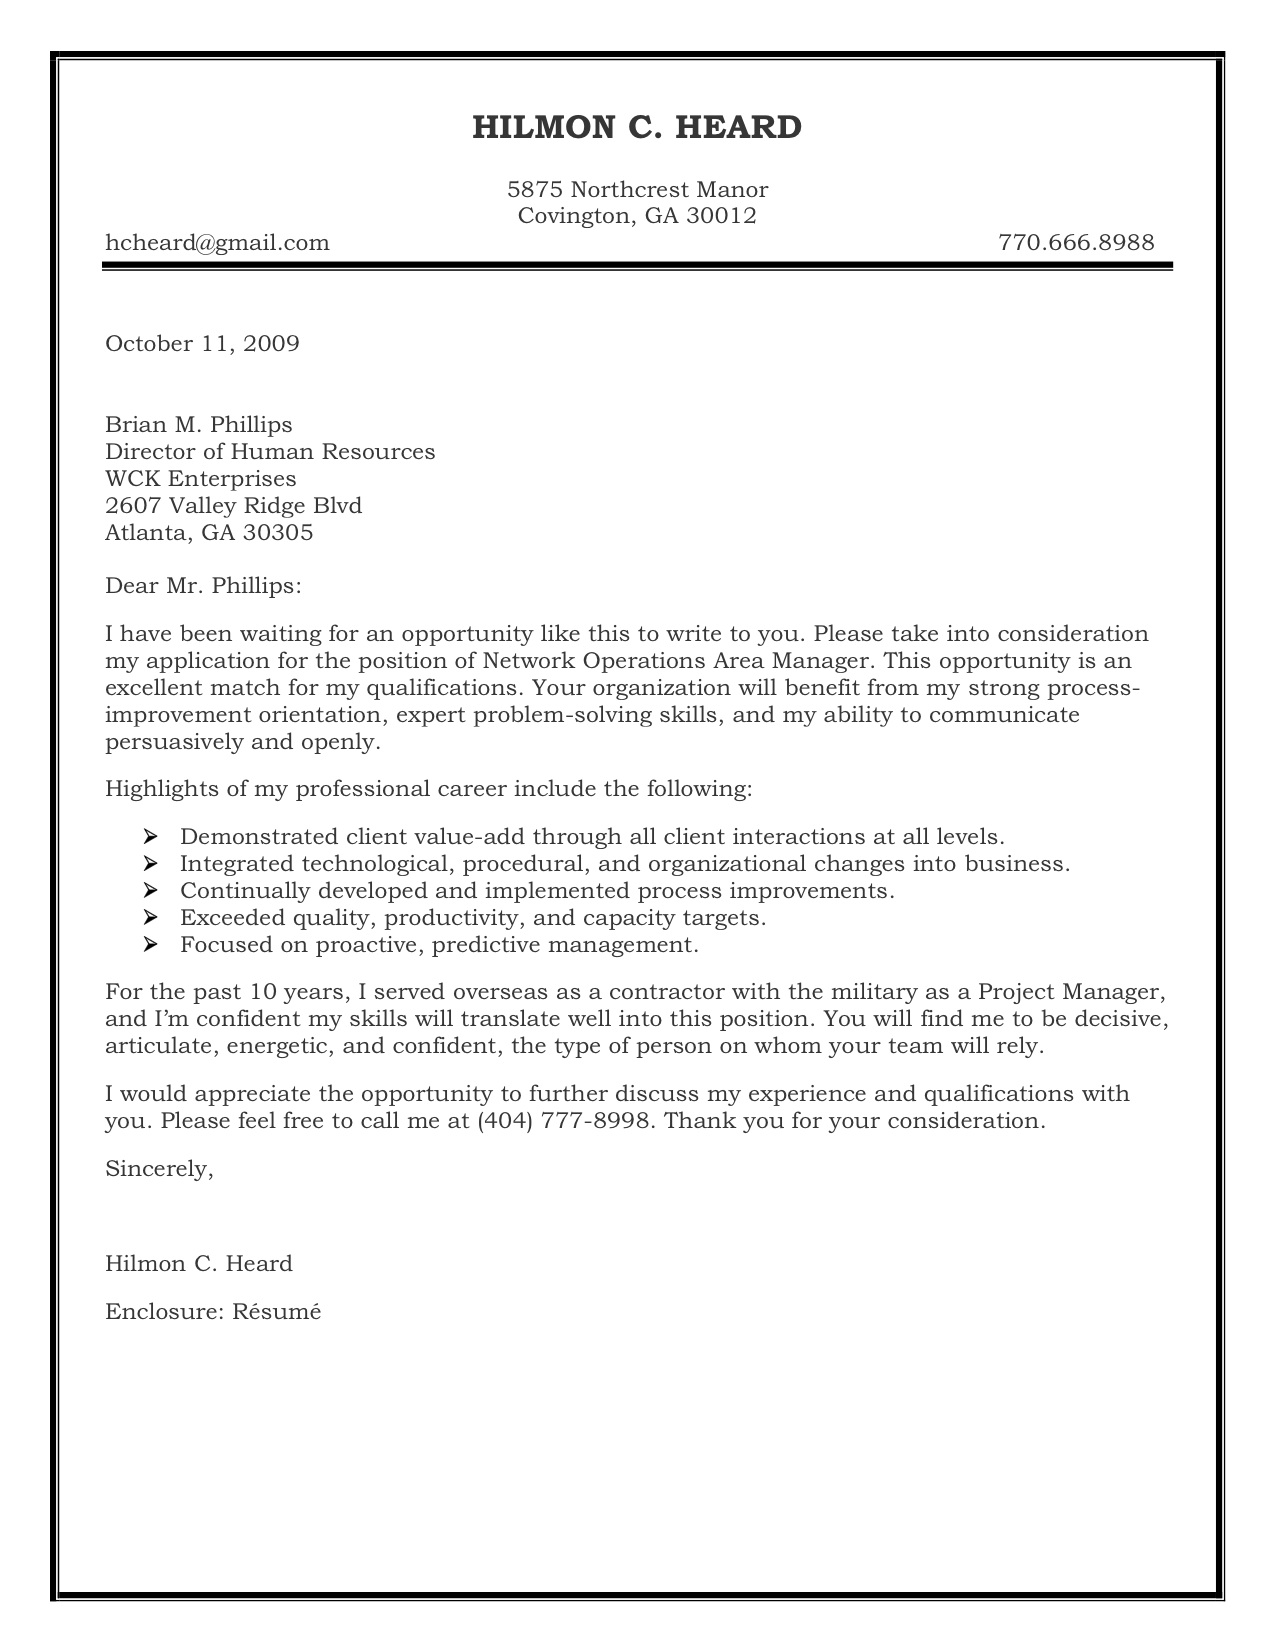 Cover Letter For Job Application Sample Cover Letter For